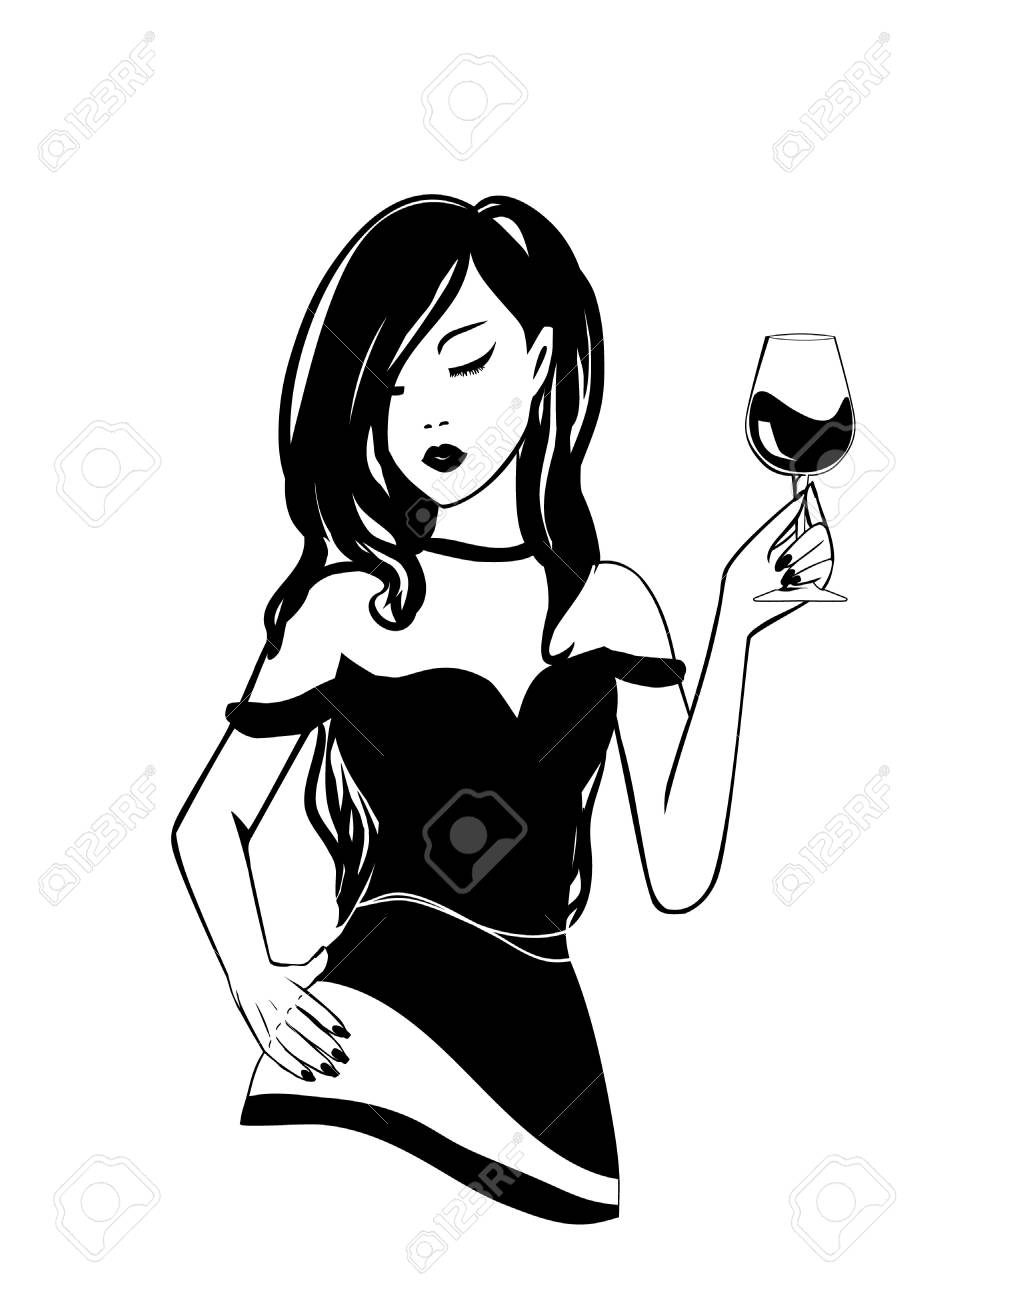 Isolated logo Silhouette of black and white stylish young girl with glass of alcoholic booze in National wine day. Party poster, illustration of fun fashion lifestyle woman with long curly hair - 101294827